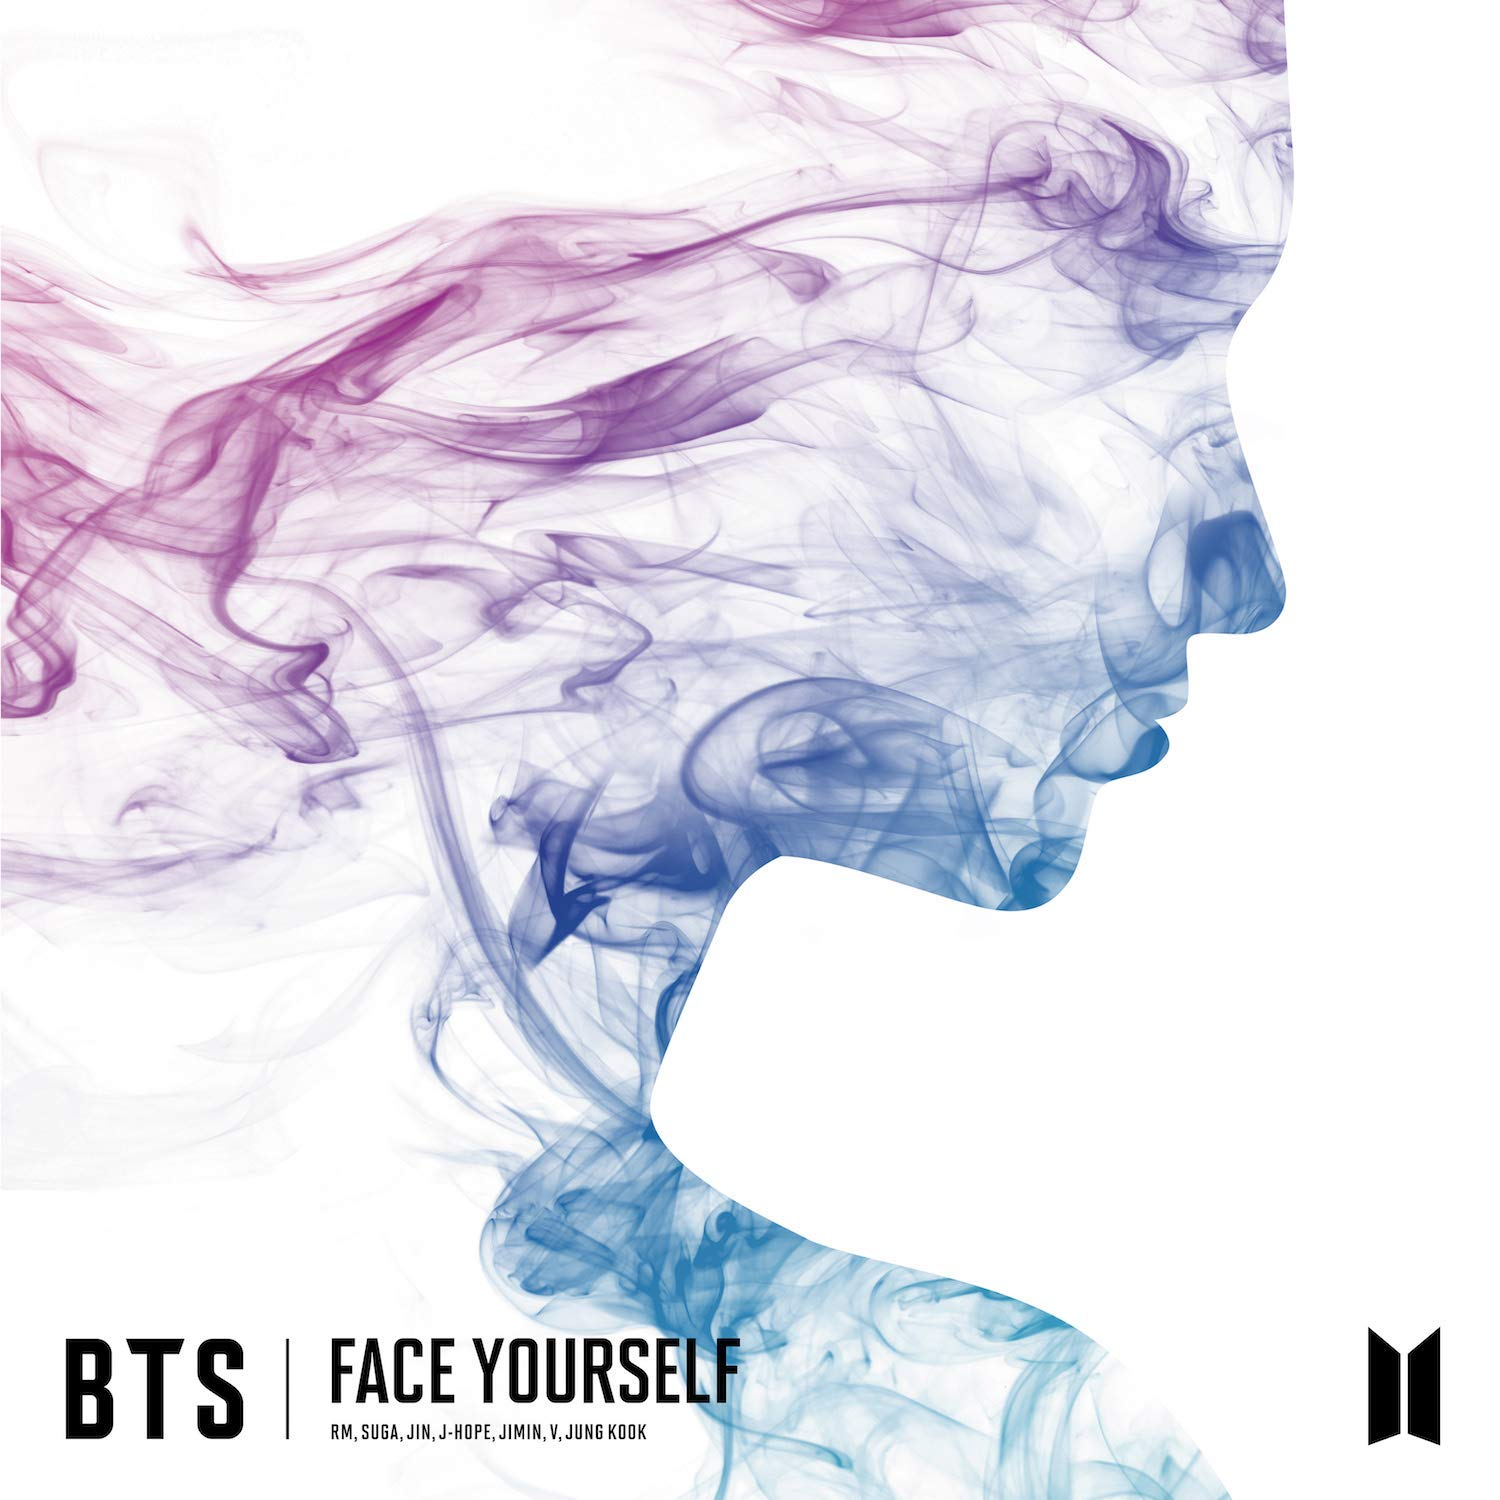 BTS - Face Yourself [Limited Edition CD/DVD]